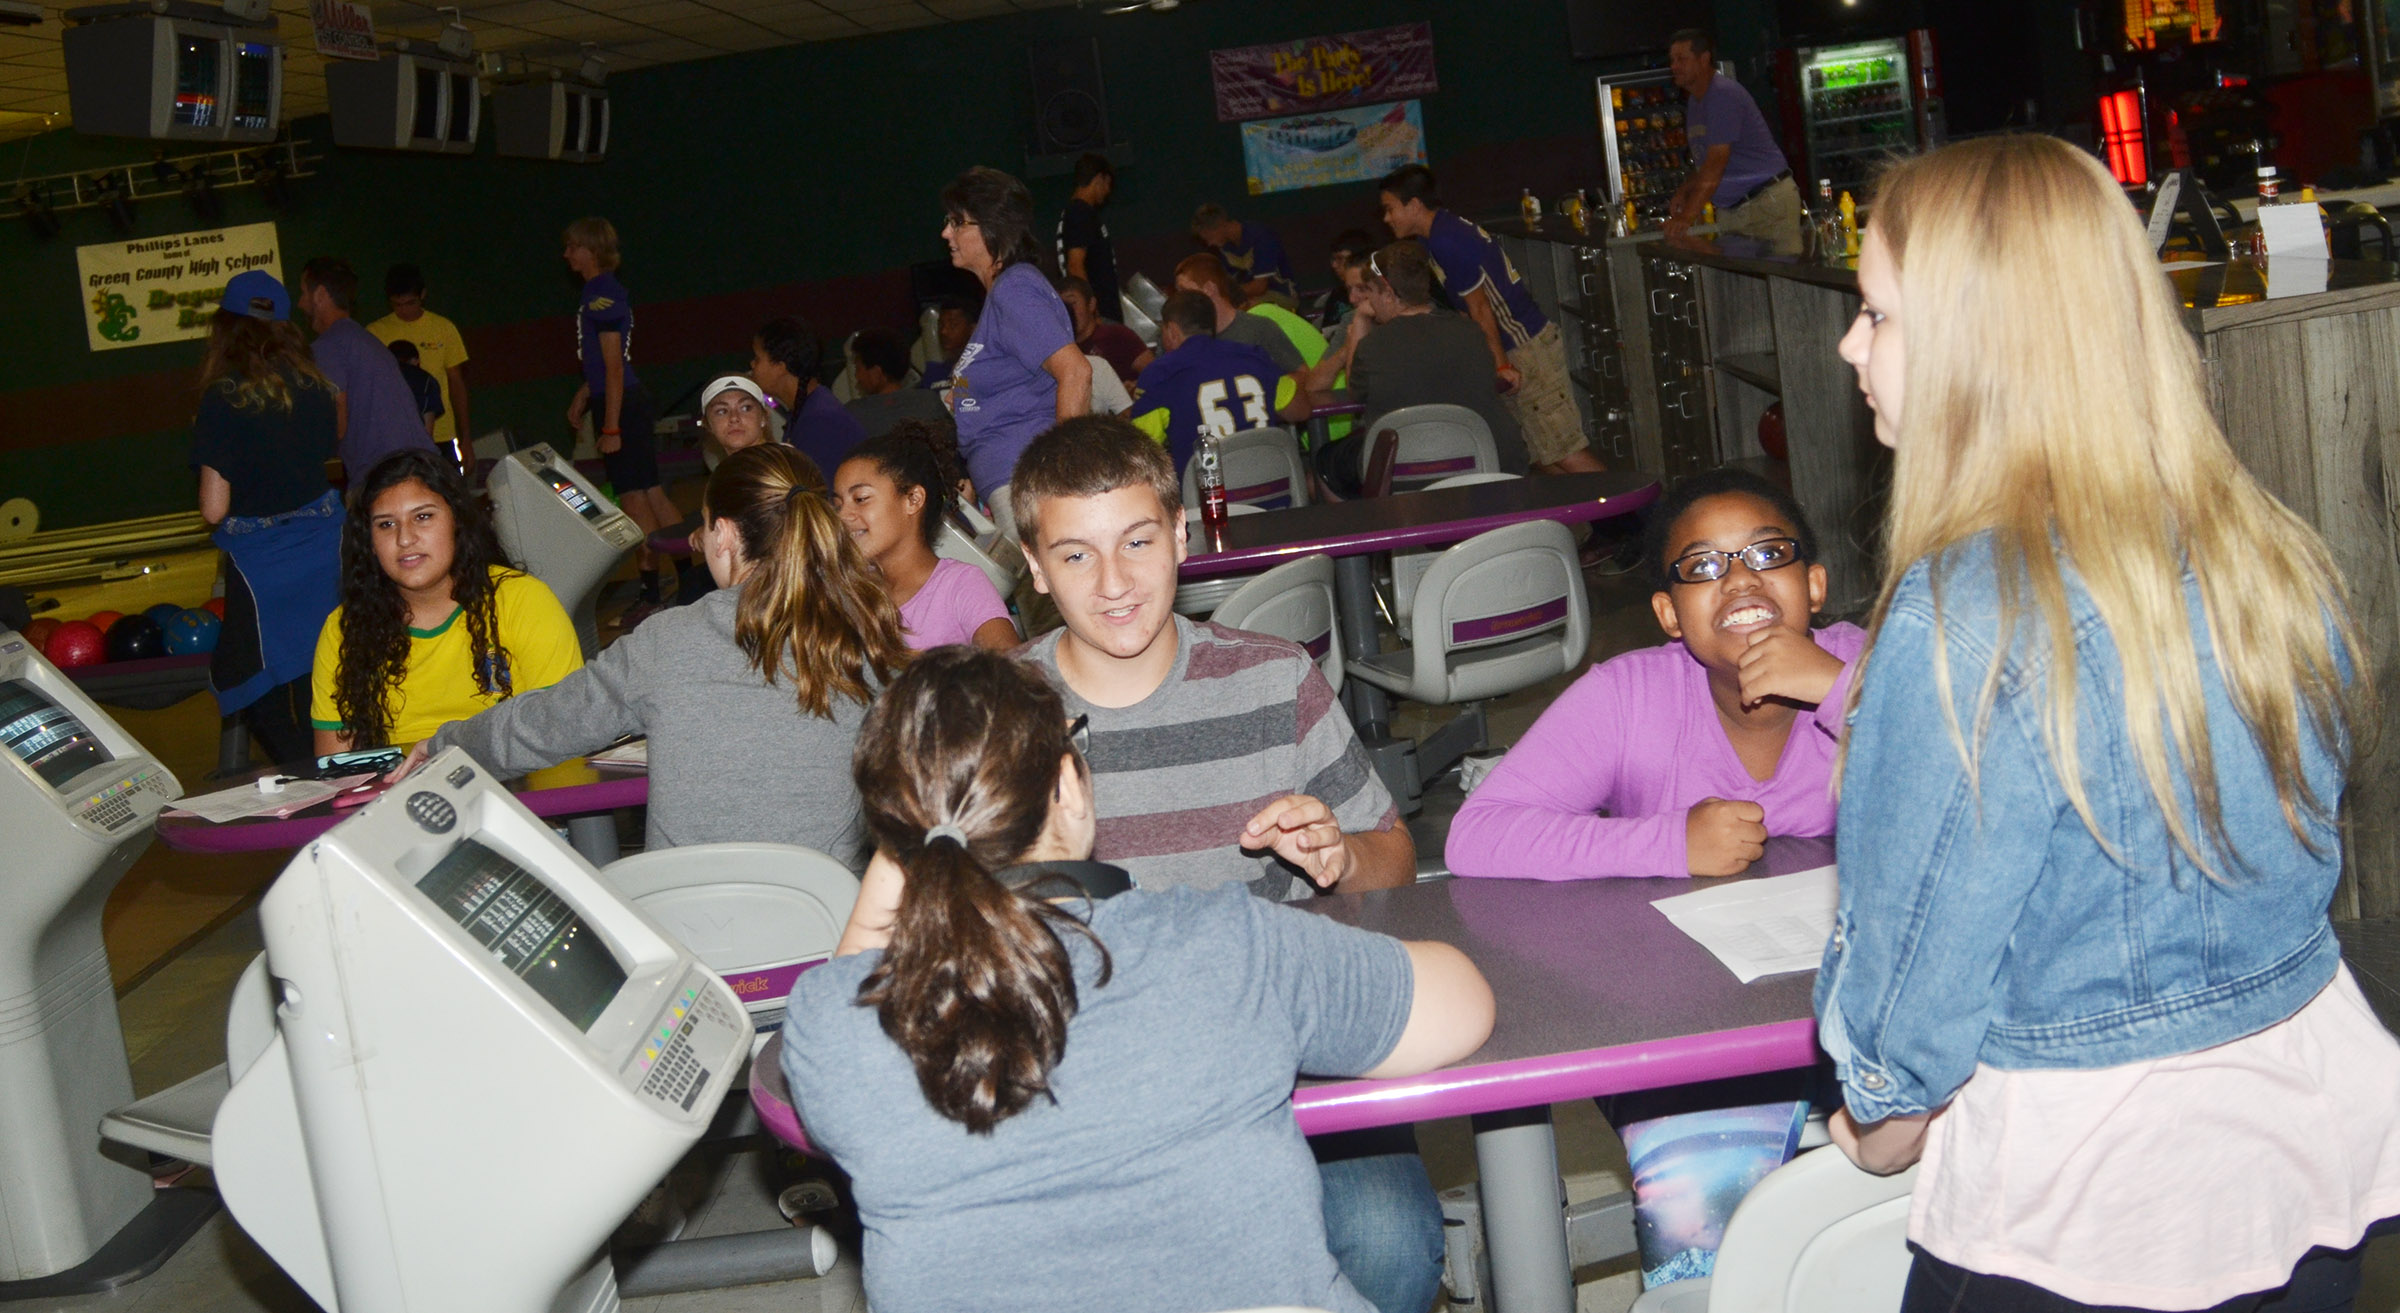 CHS freshmen talk as they bowl together.